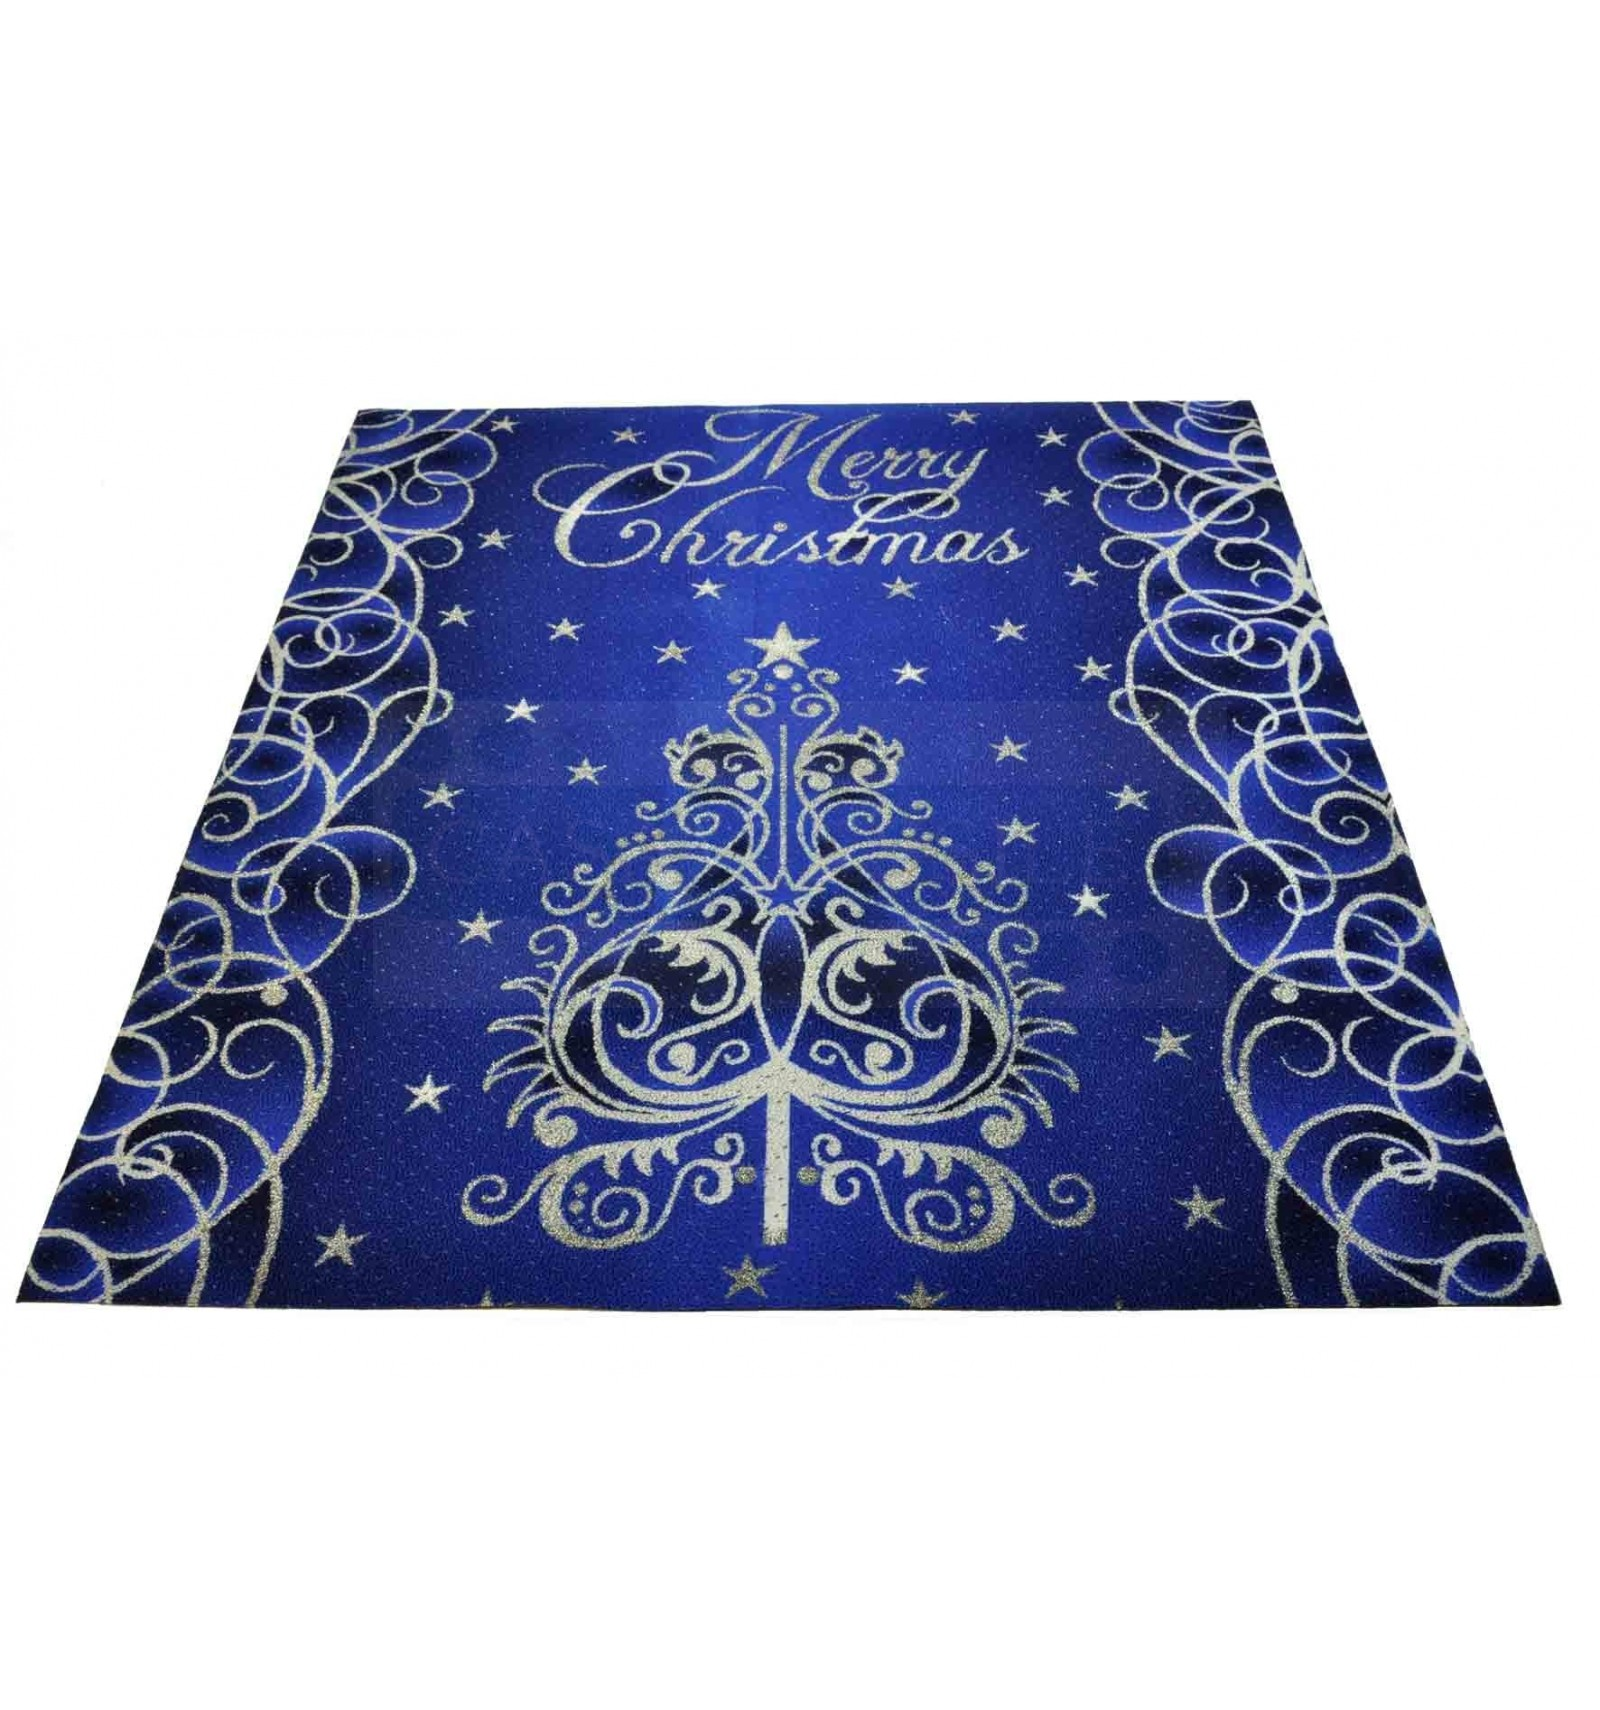 Blue Christmas Tree Rug Runner 100x110 Cm B1 Casa Tessile